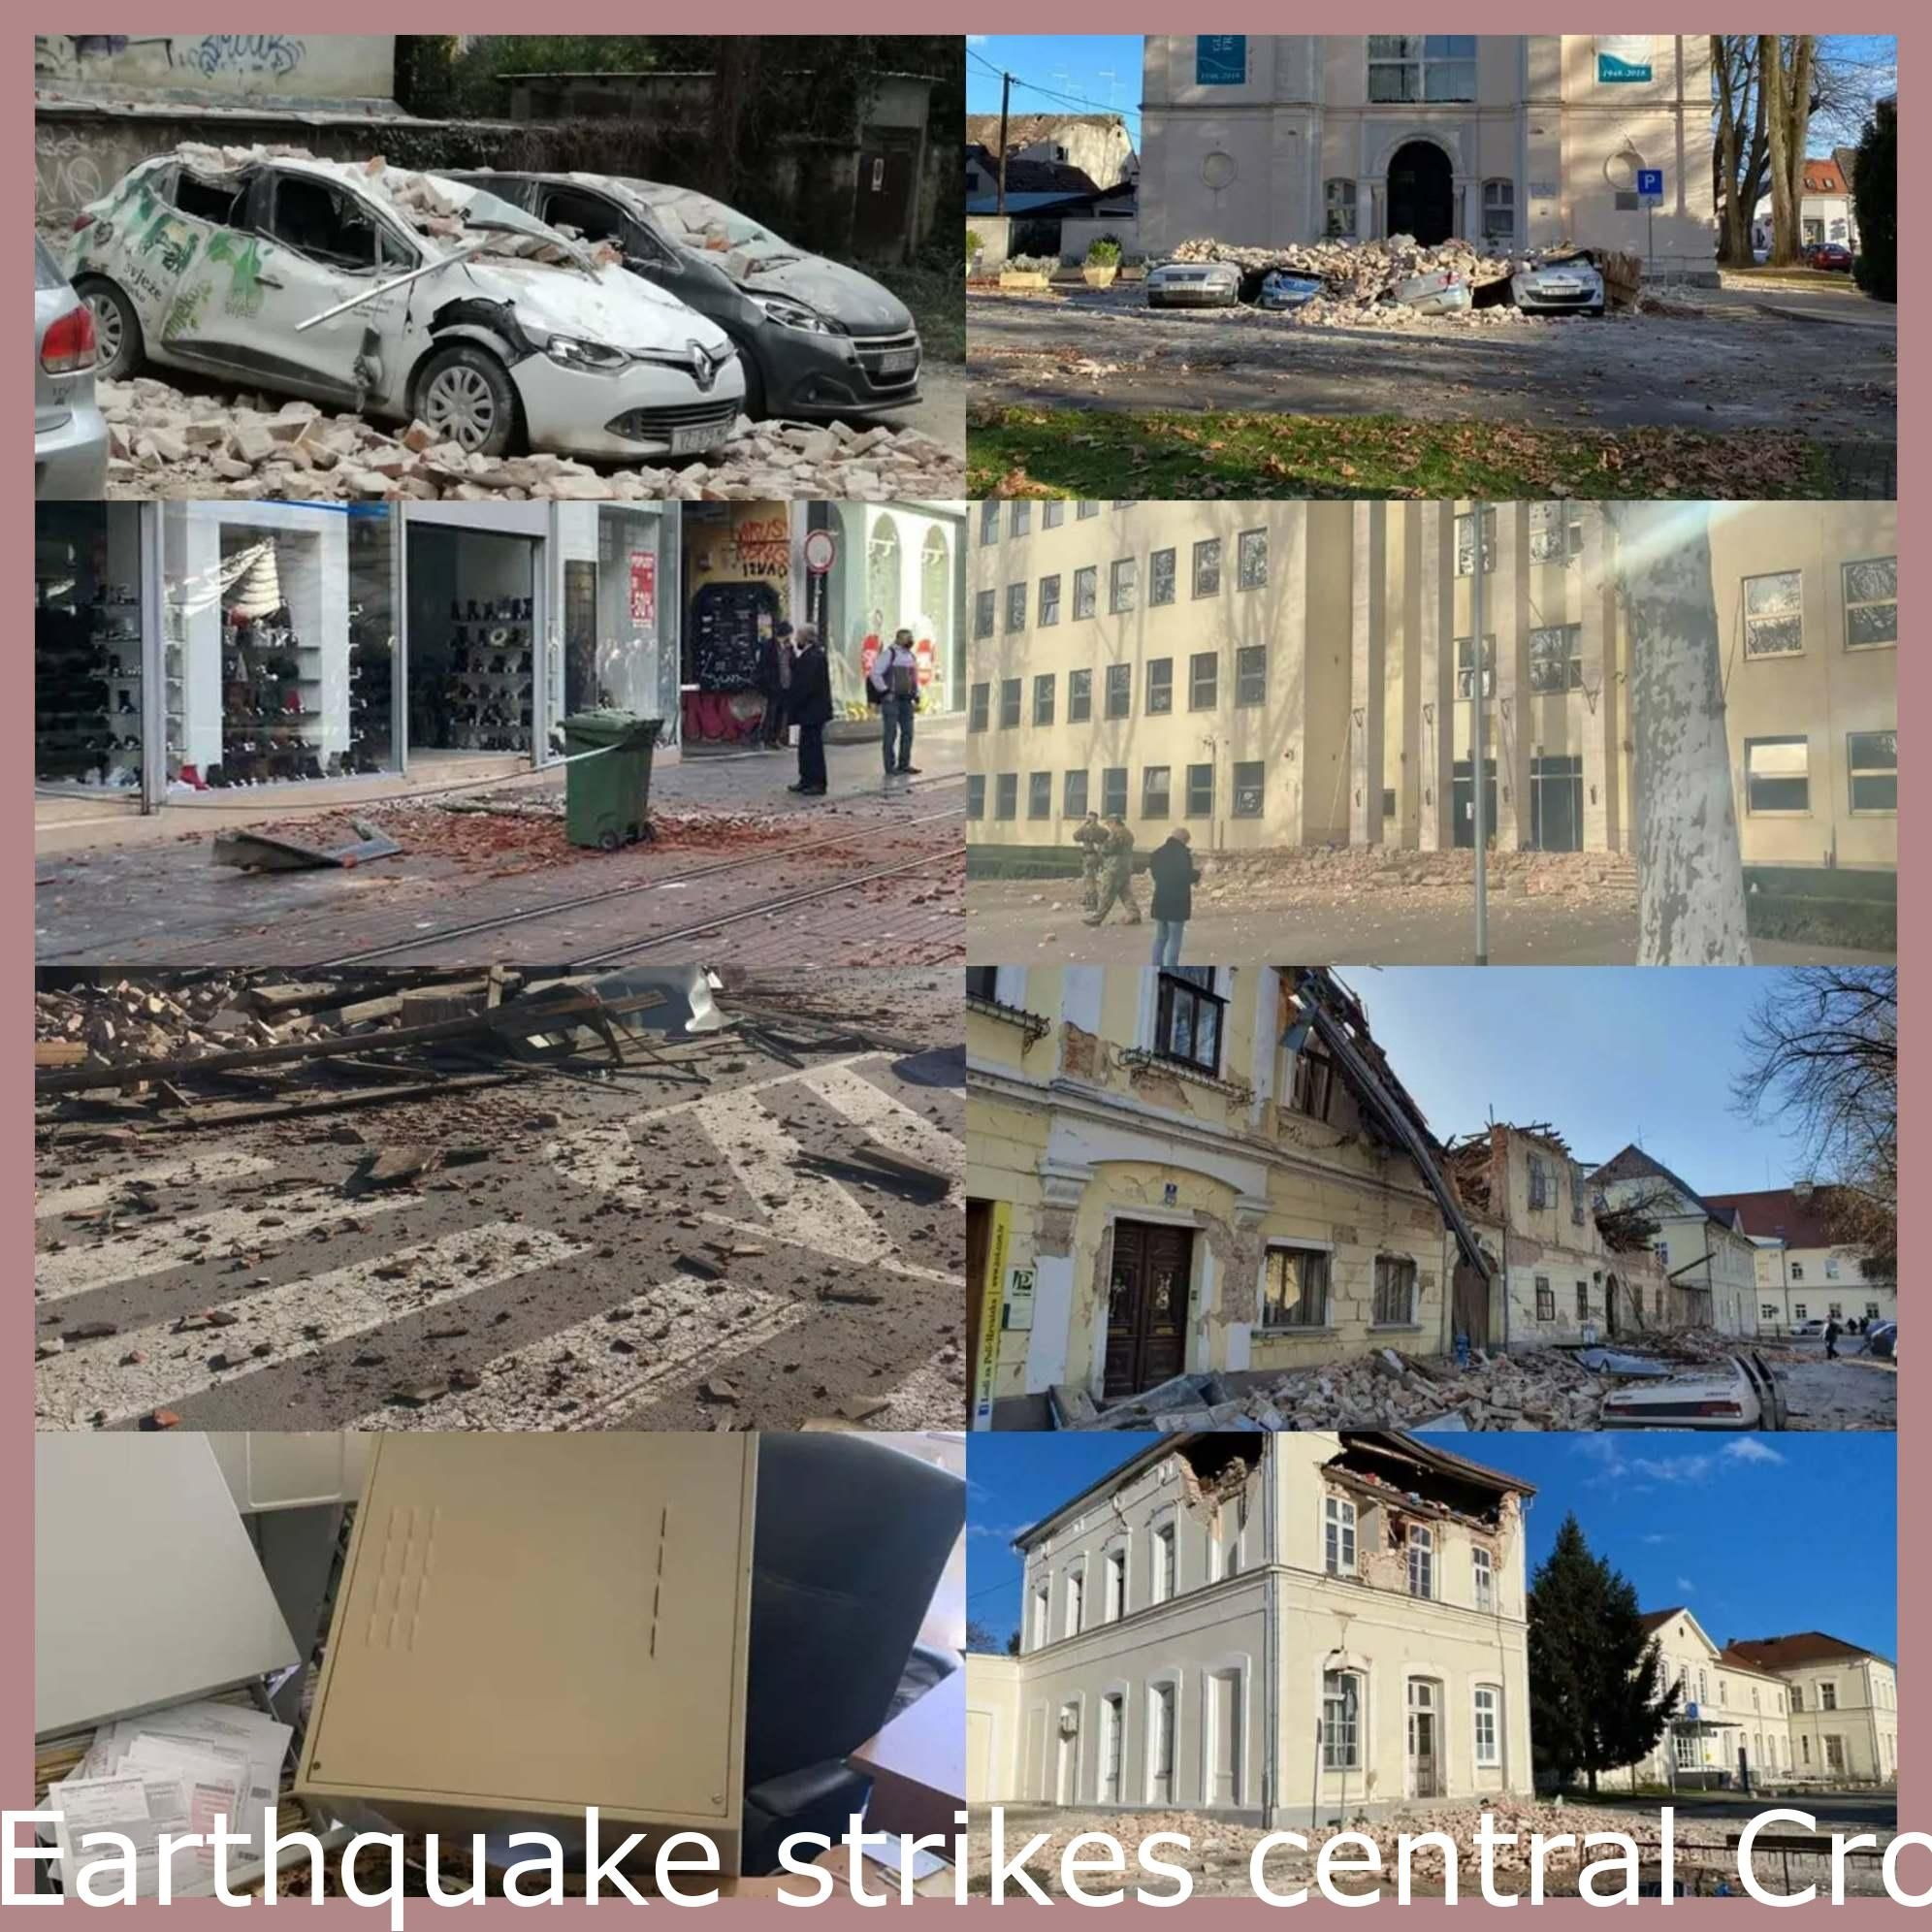 Stupid Fails Top Earthquake Strikes Central Croatia On December 29 2020 Petrinja Sisak Epic Fail Pictures Best Fails Ever Funny Gifs Fails